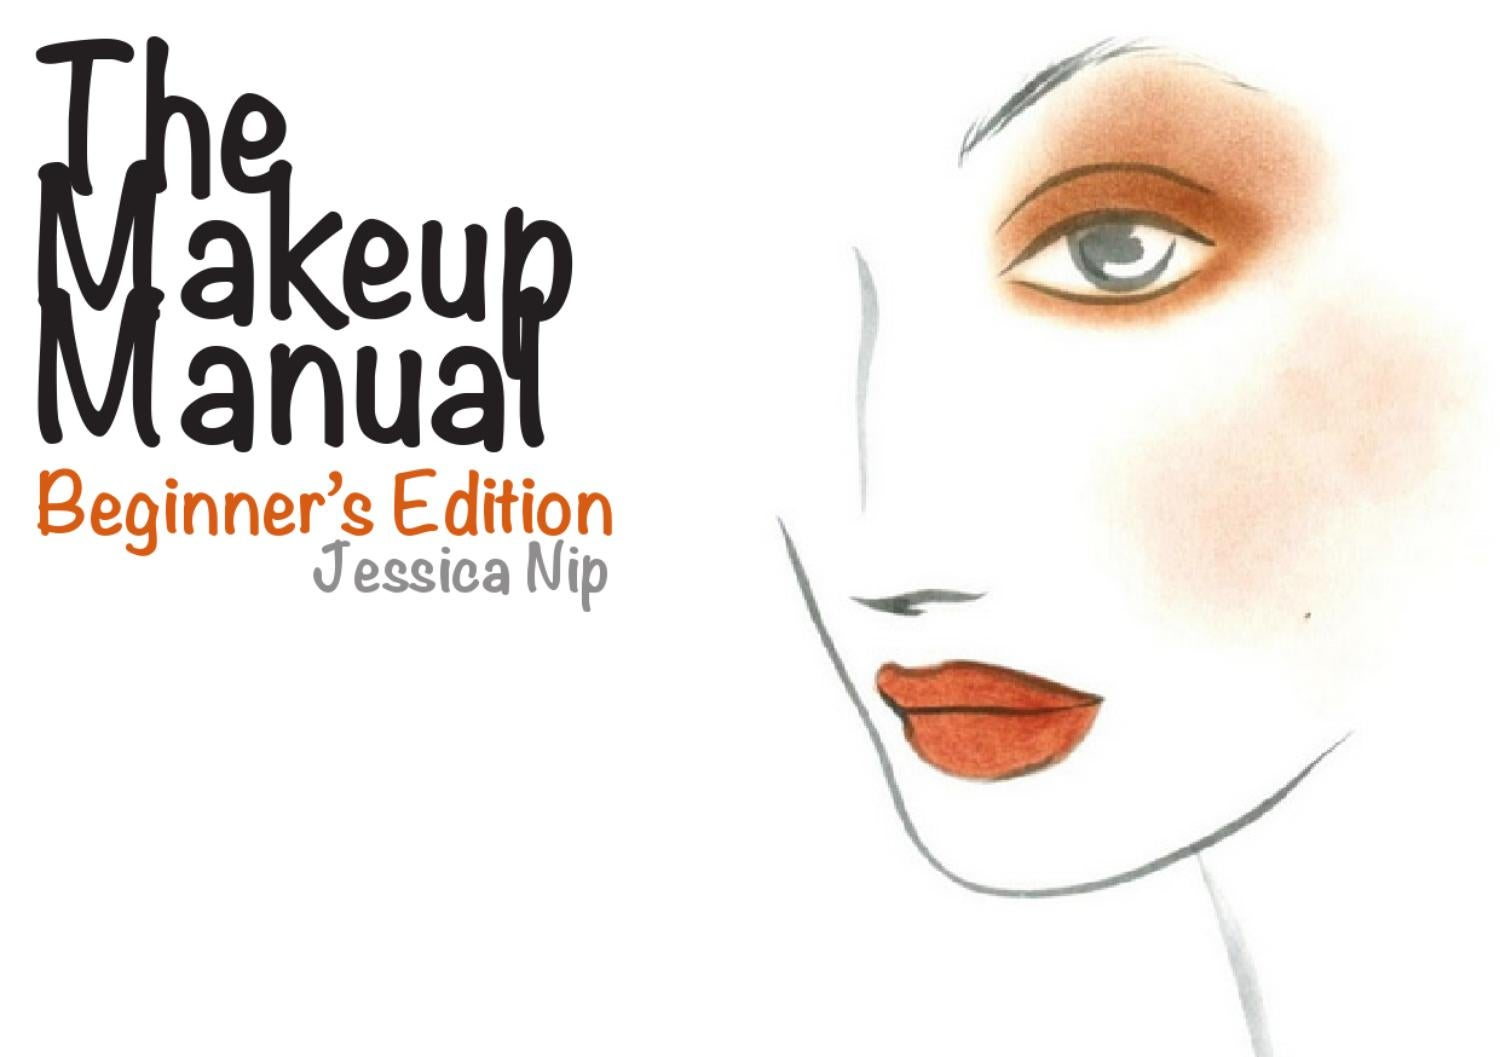 The Make Up Manual